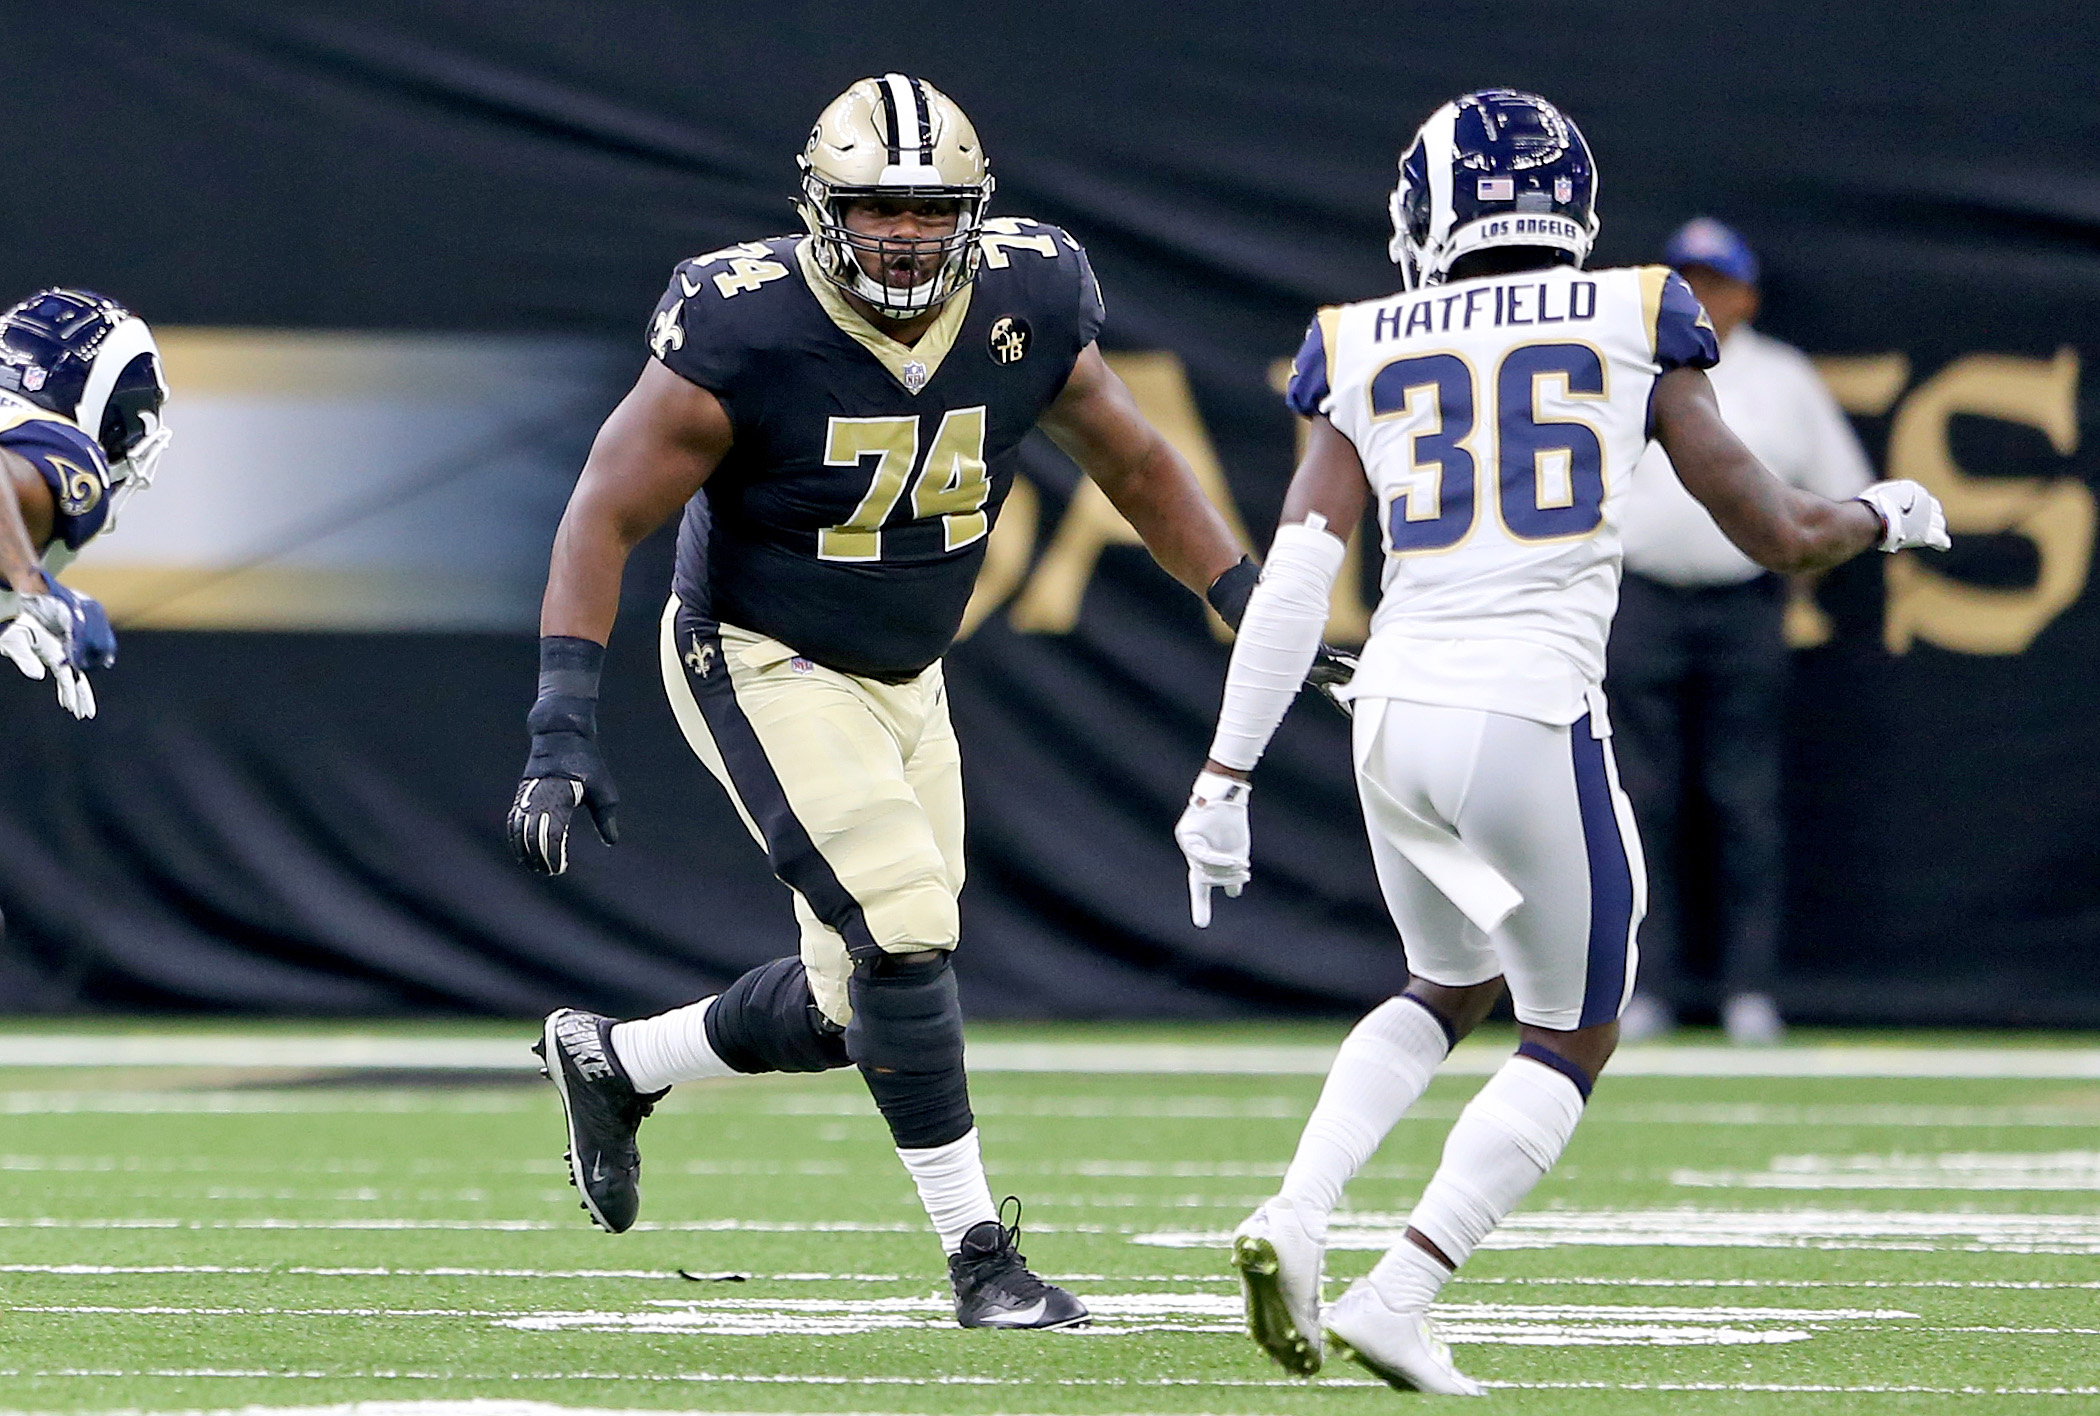 New Orleans Saints offensive tackle Jermon Bushrod (74) during the preseason game between the Los Angeles Rams and the New Orleans Saints at the Superdome on Friday, August 30, 2018. (Photo by Michael DeMocker, NOLA.com | The Times-Picayune)